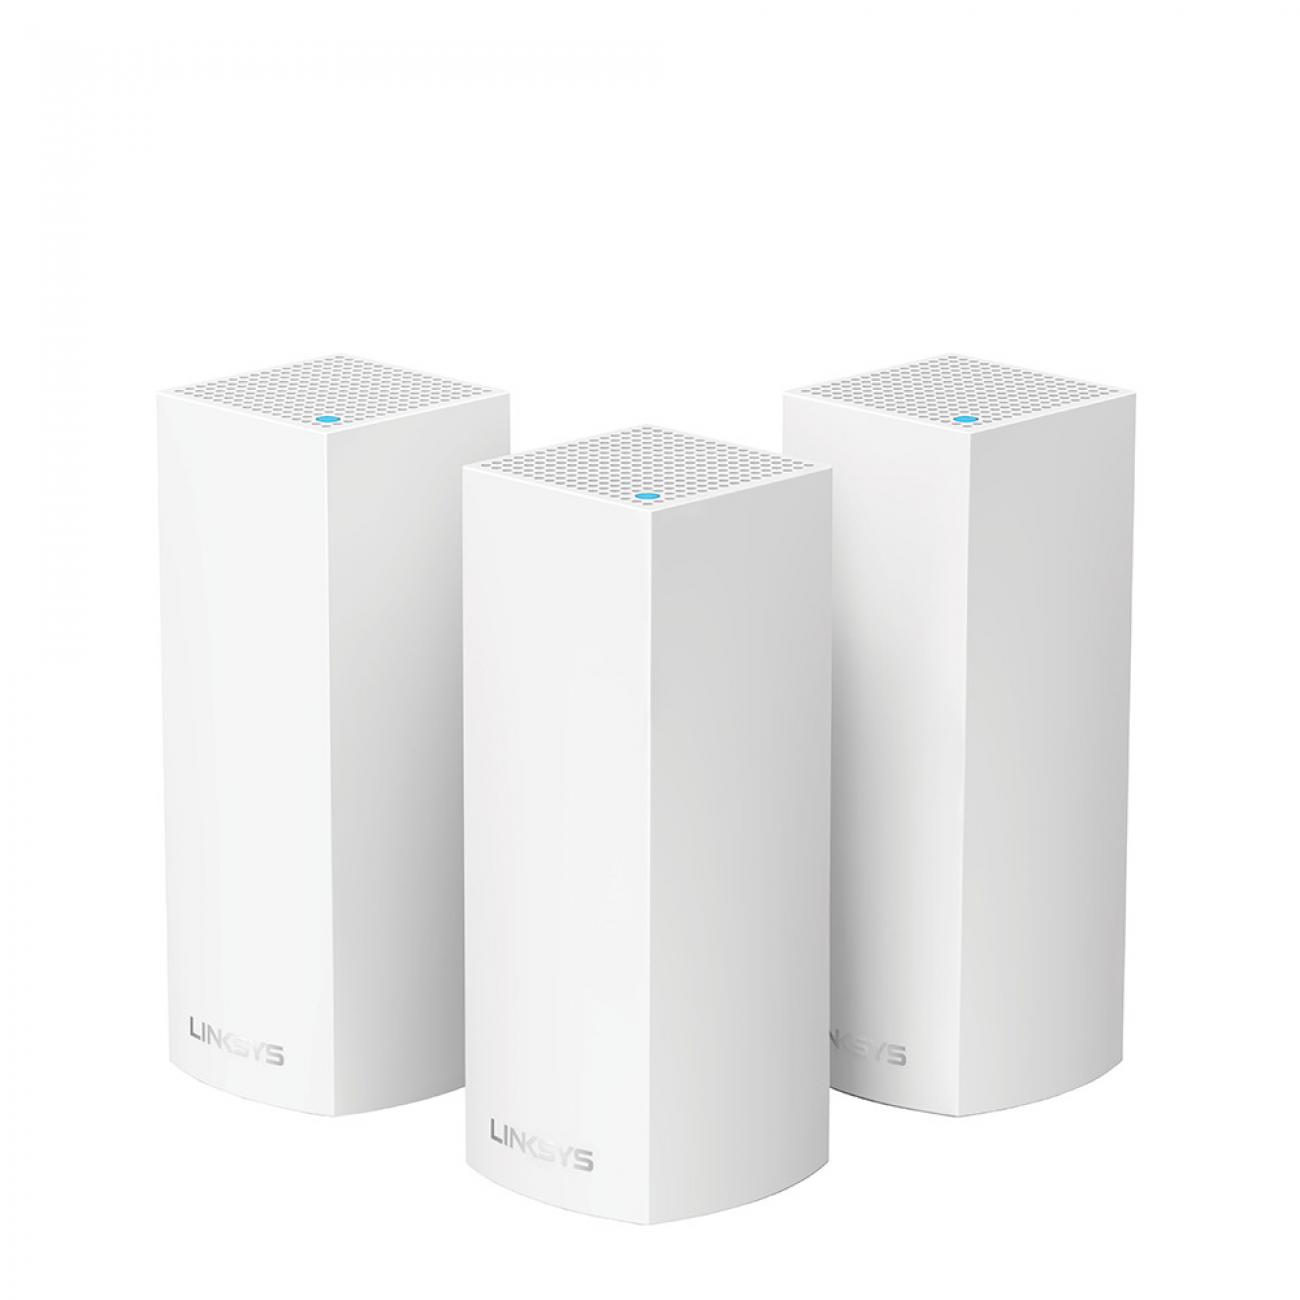 LINKSYS VELOP WHW0303-AH TRI-BAND AC6600 INTELLIGENT MESH WIFI SYSTEM WIFI 5 MU-MIMO SYSTEM 3-PK